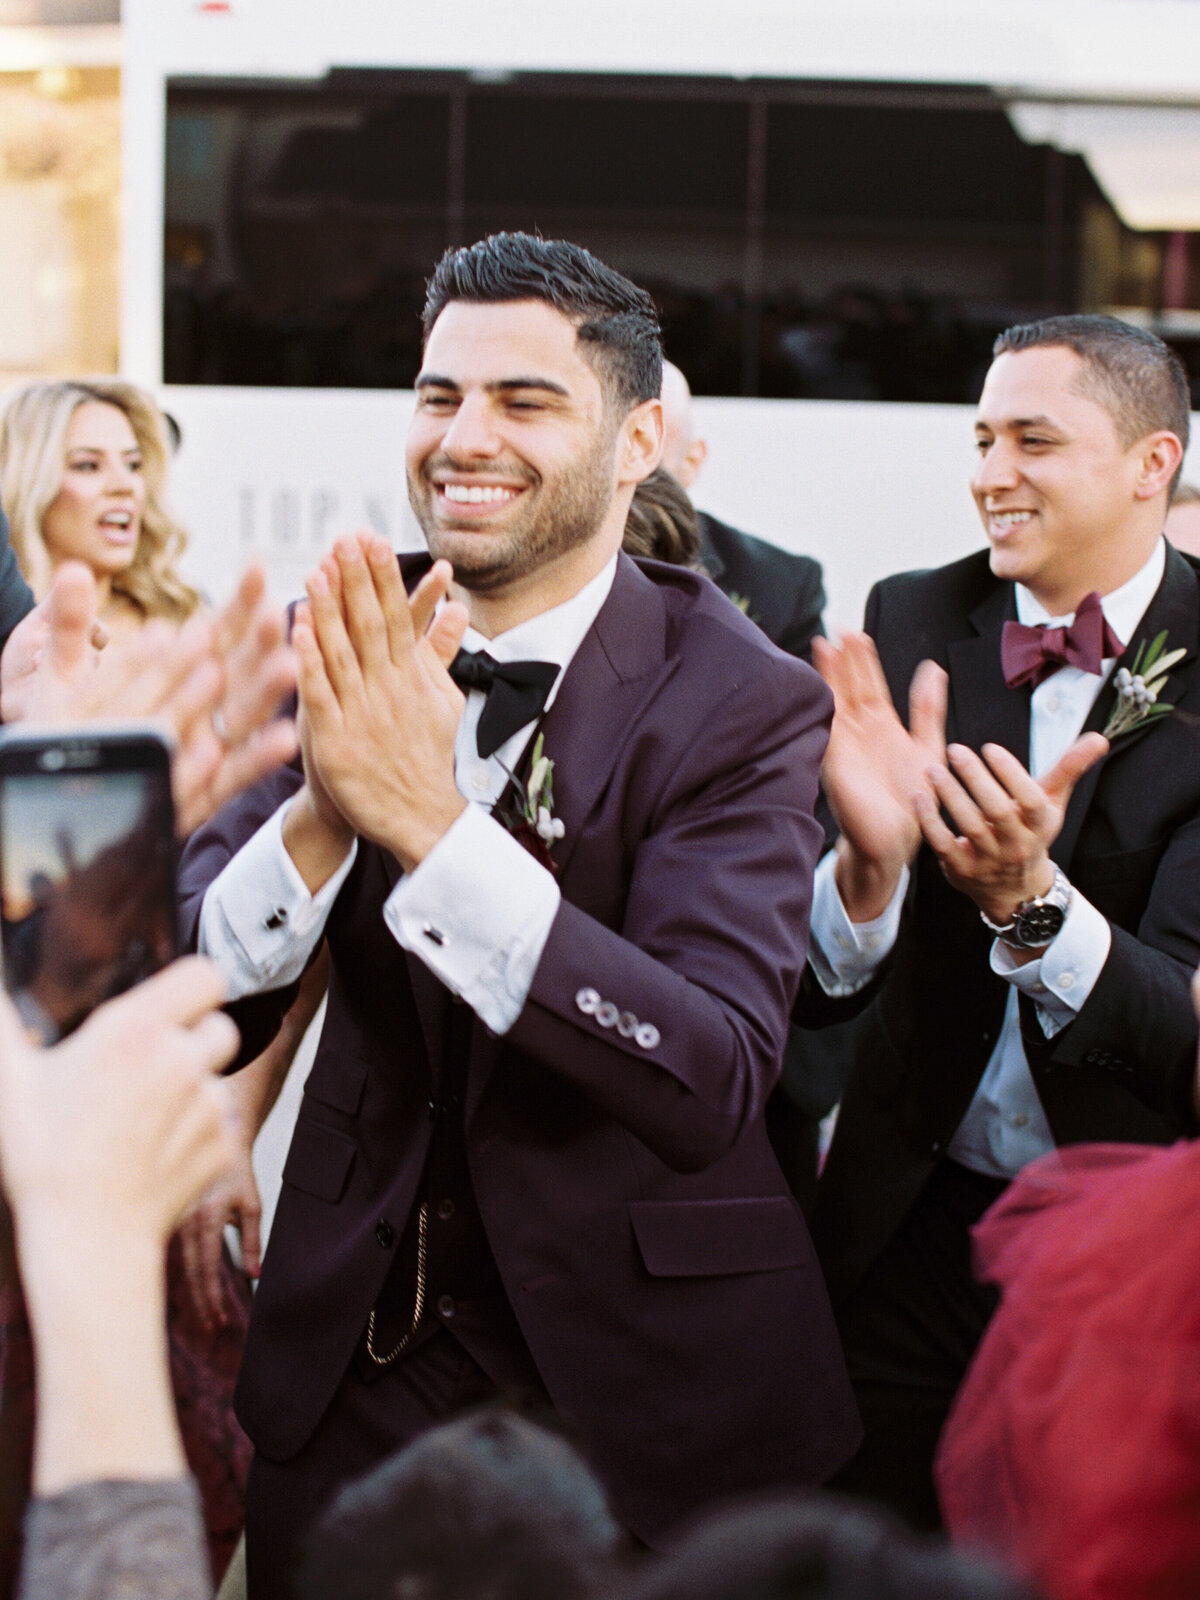 Kaylea Moreno_wedding gallery - Rami-Cassandra-Wedding-krmorenophoto-337